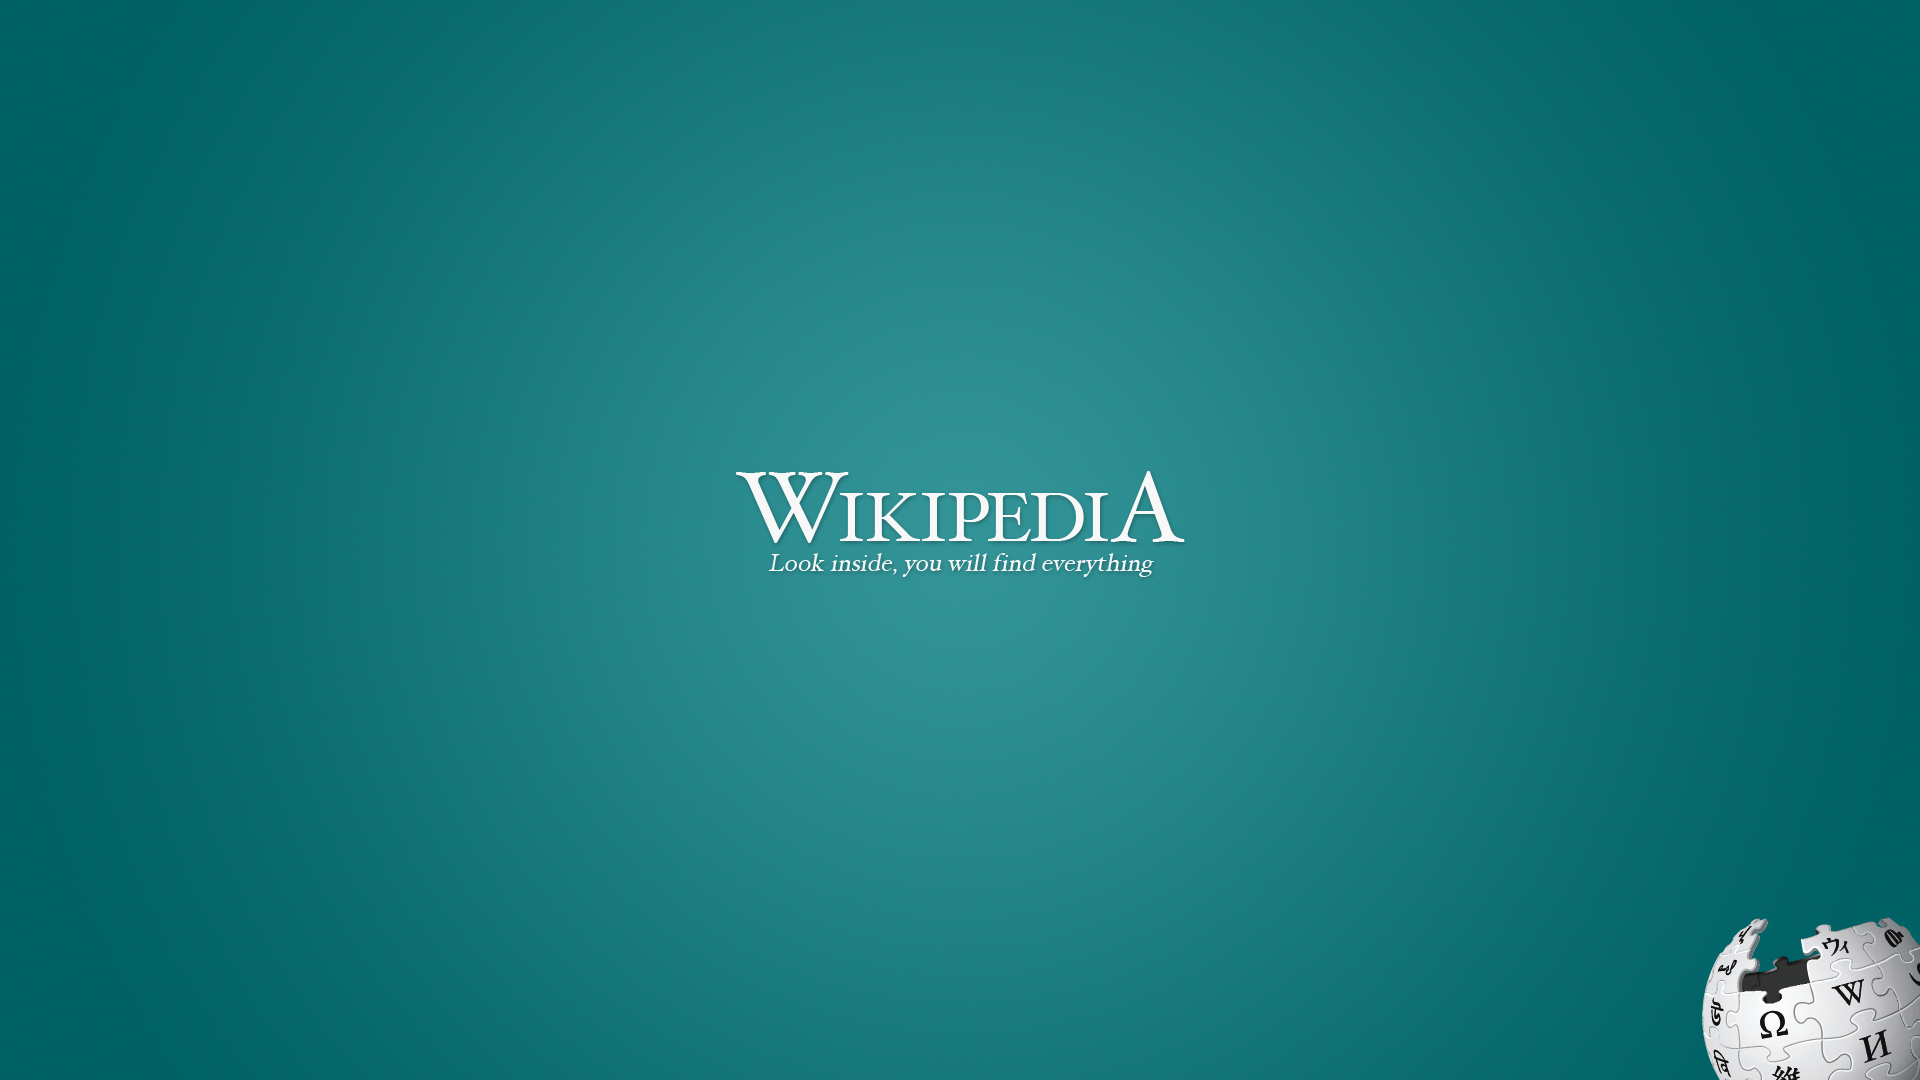 Company wikipedia everything logos HD Wallpaper